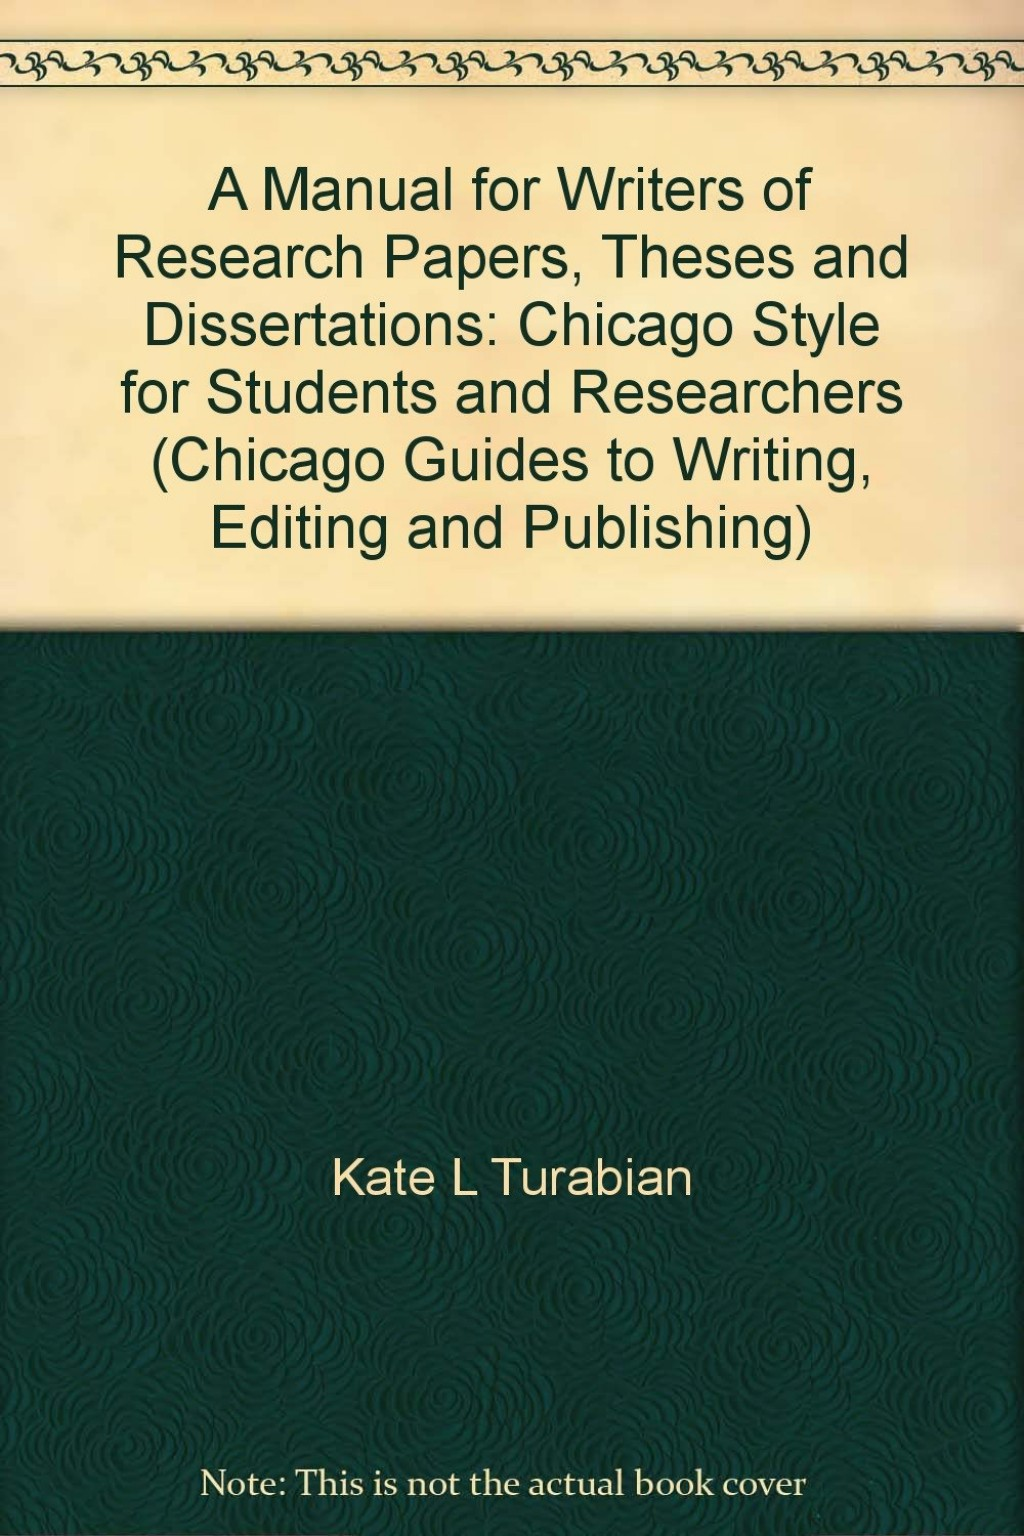 009 Manual For Writers Of Researchs Theses And Dissertations By Kate L Turabian 712bwm9gx2dl Sensational A Research Papers L. Large